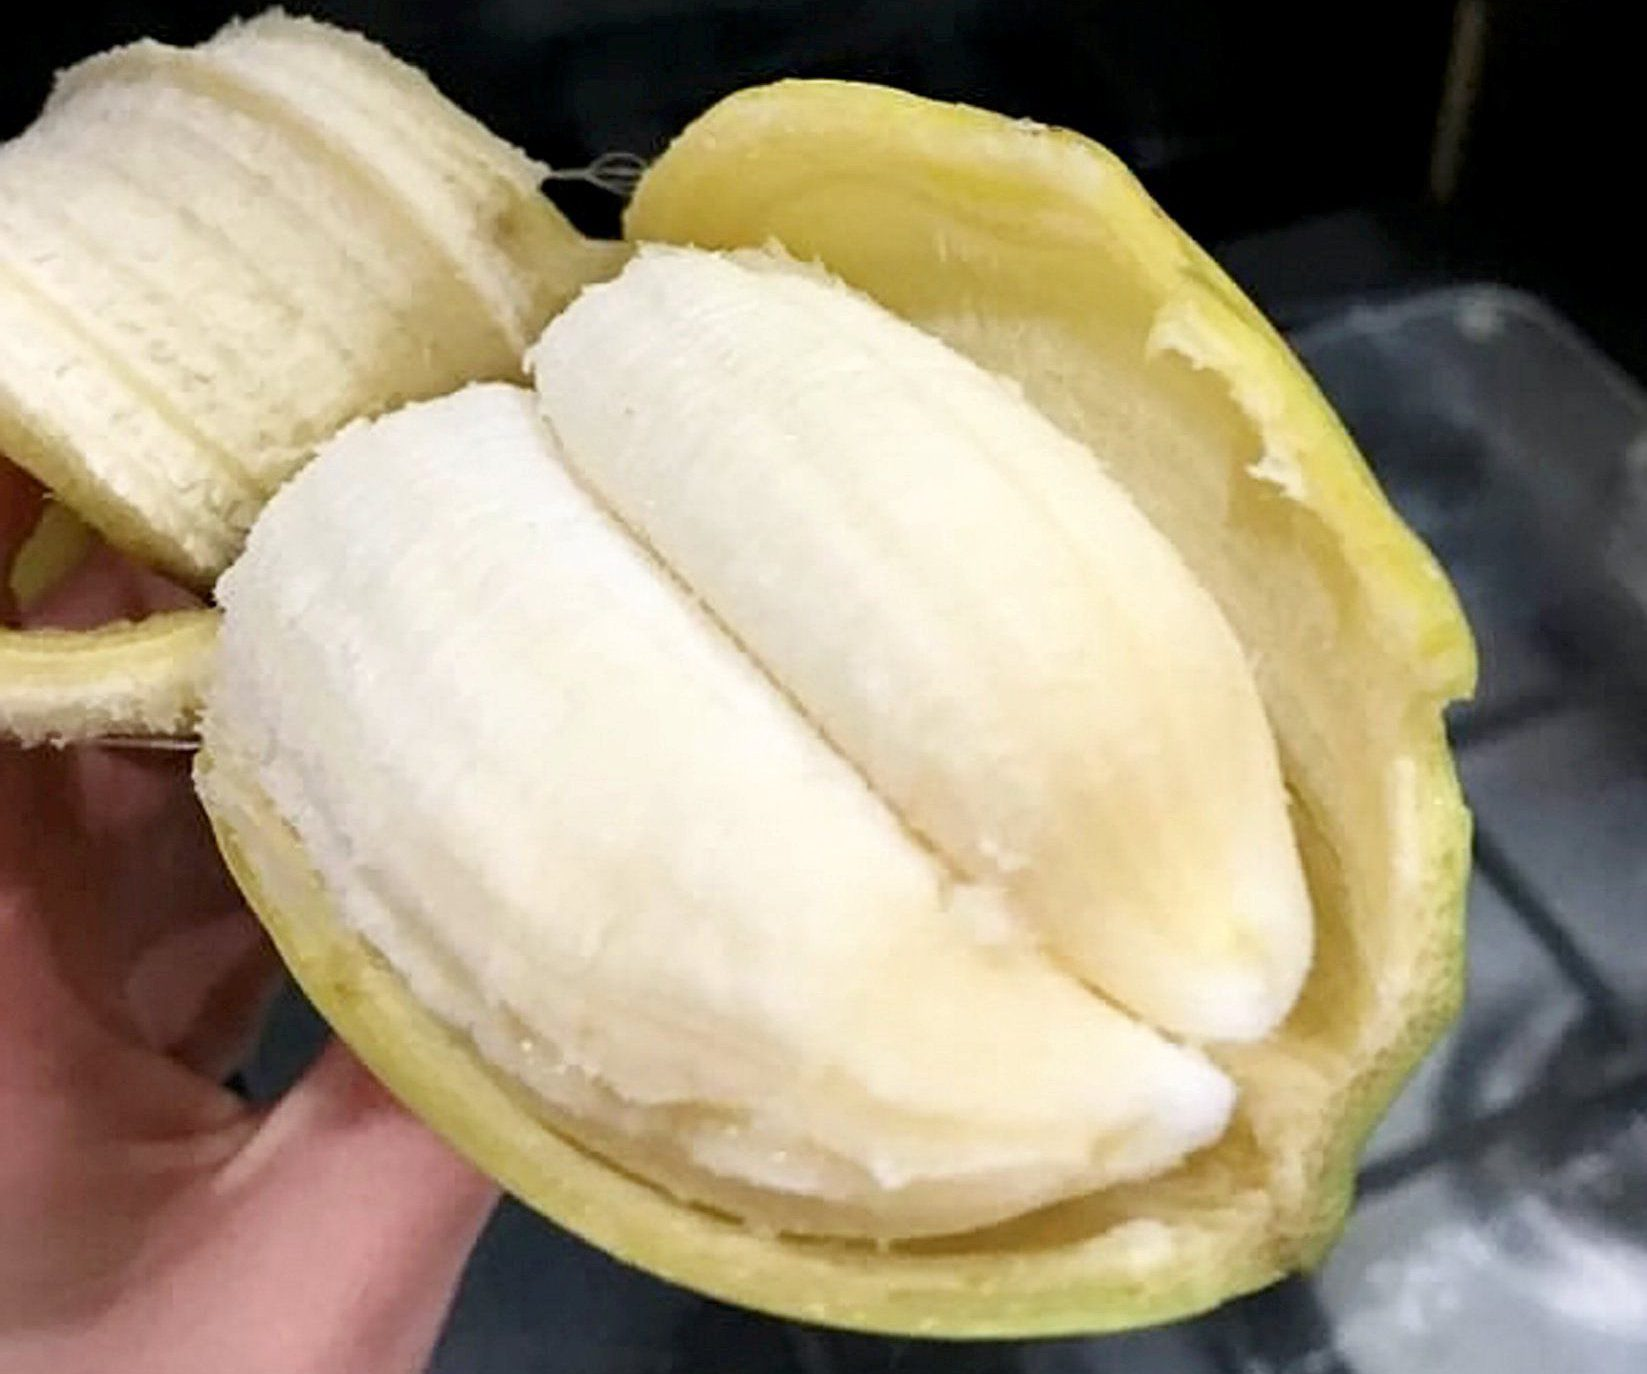 A dad was stunned when he bought a bunch of bananas ñ and found two in a single skin. See NTI story NTINANA. Richard Preece, 33, discovered the rare ëdouble bananaí after he unloaded his weekly shop from Asda. Coincidentally, the dad-of-three has taken part in several charity fun runs dressed as cartoon character Bananaman. Pub manager Richard spotted the double banana after Asda delivered an online shop to his home in Hinton, Hereford, on Monday (13/3) night.